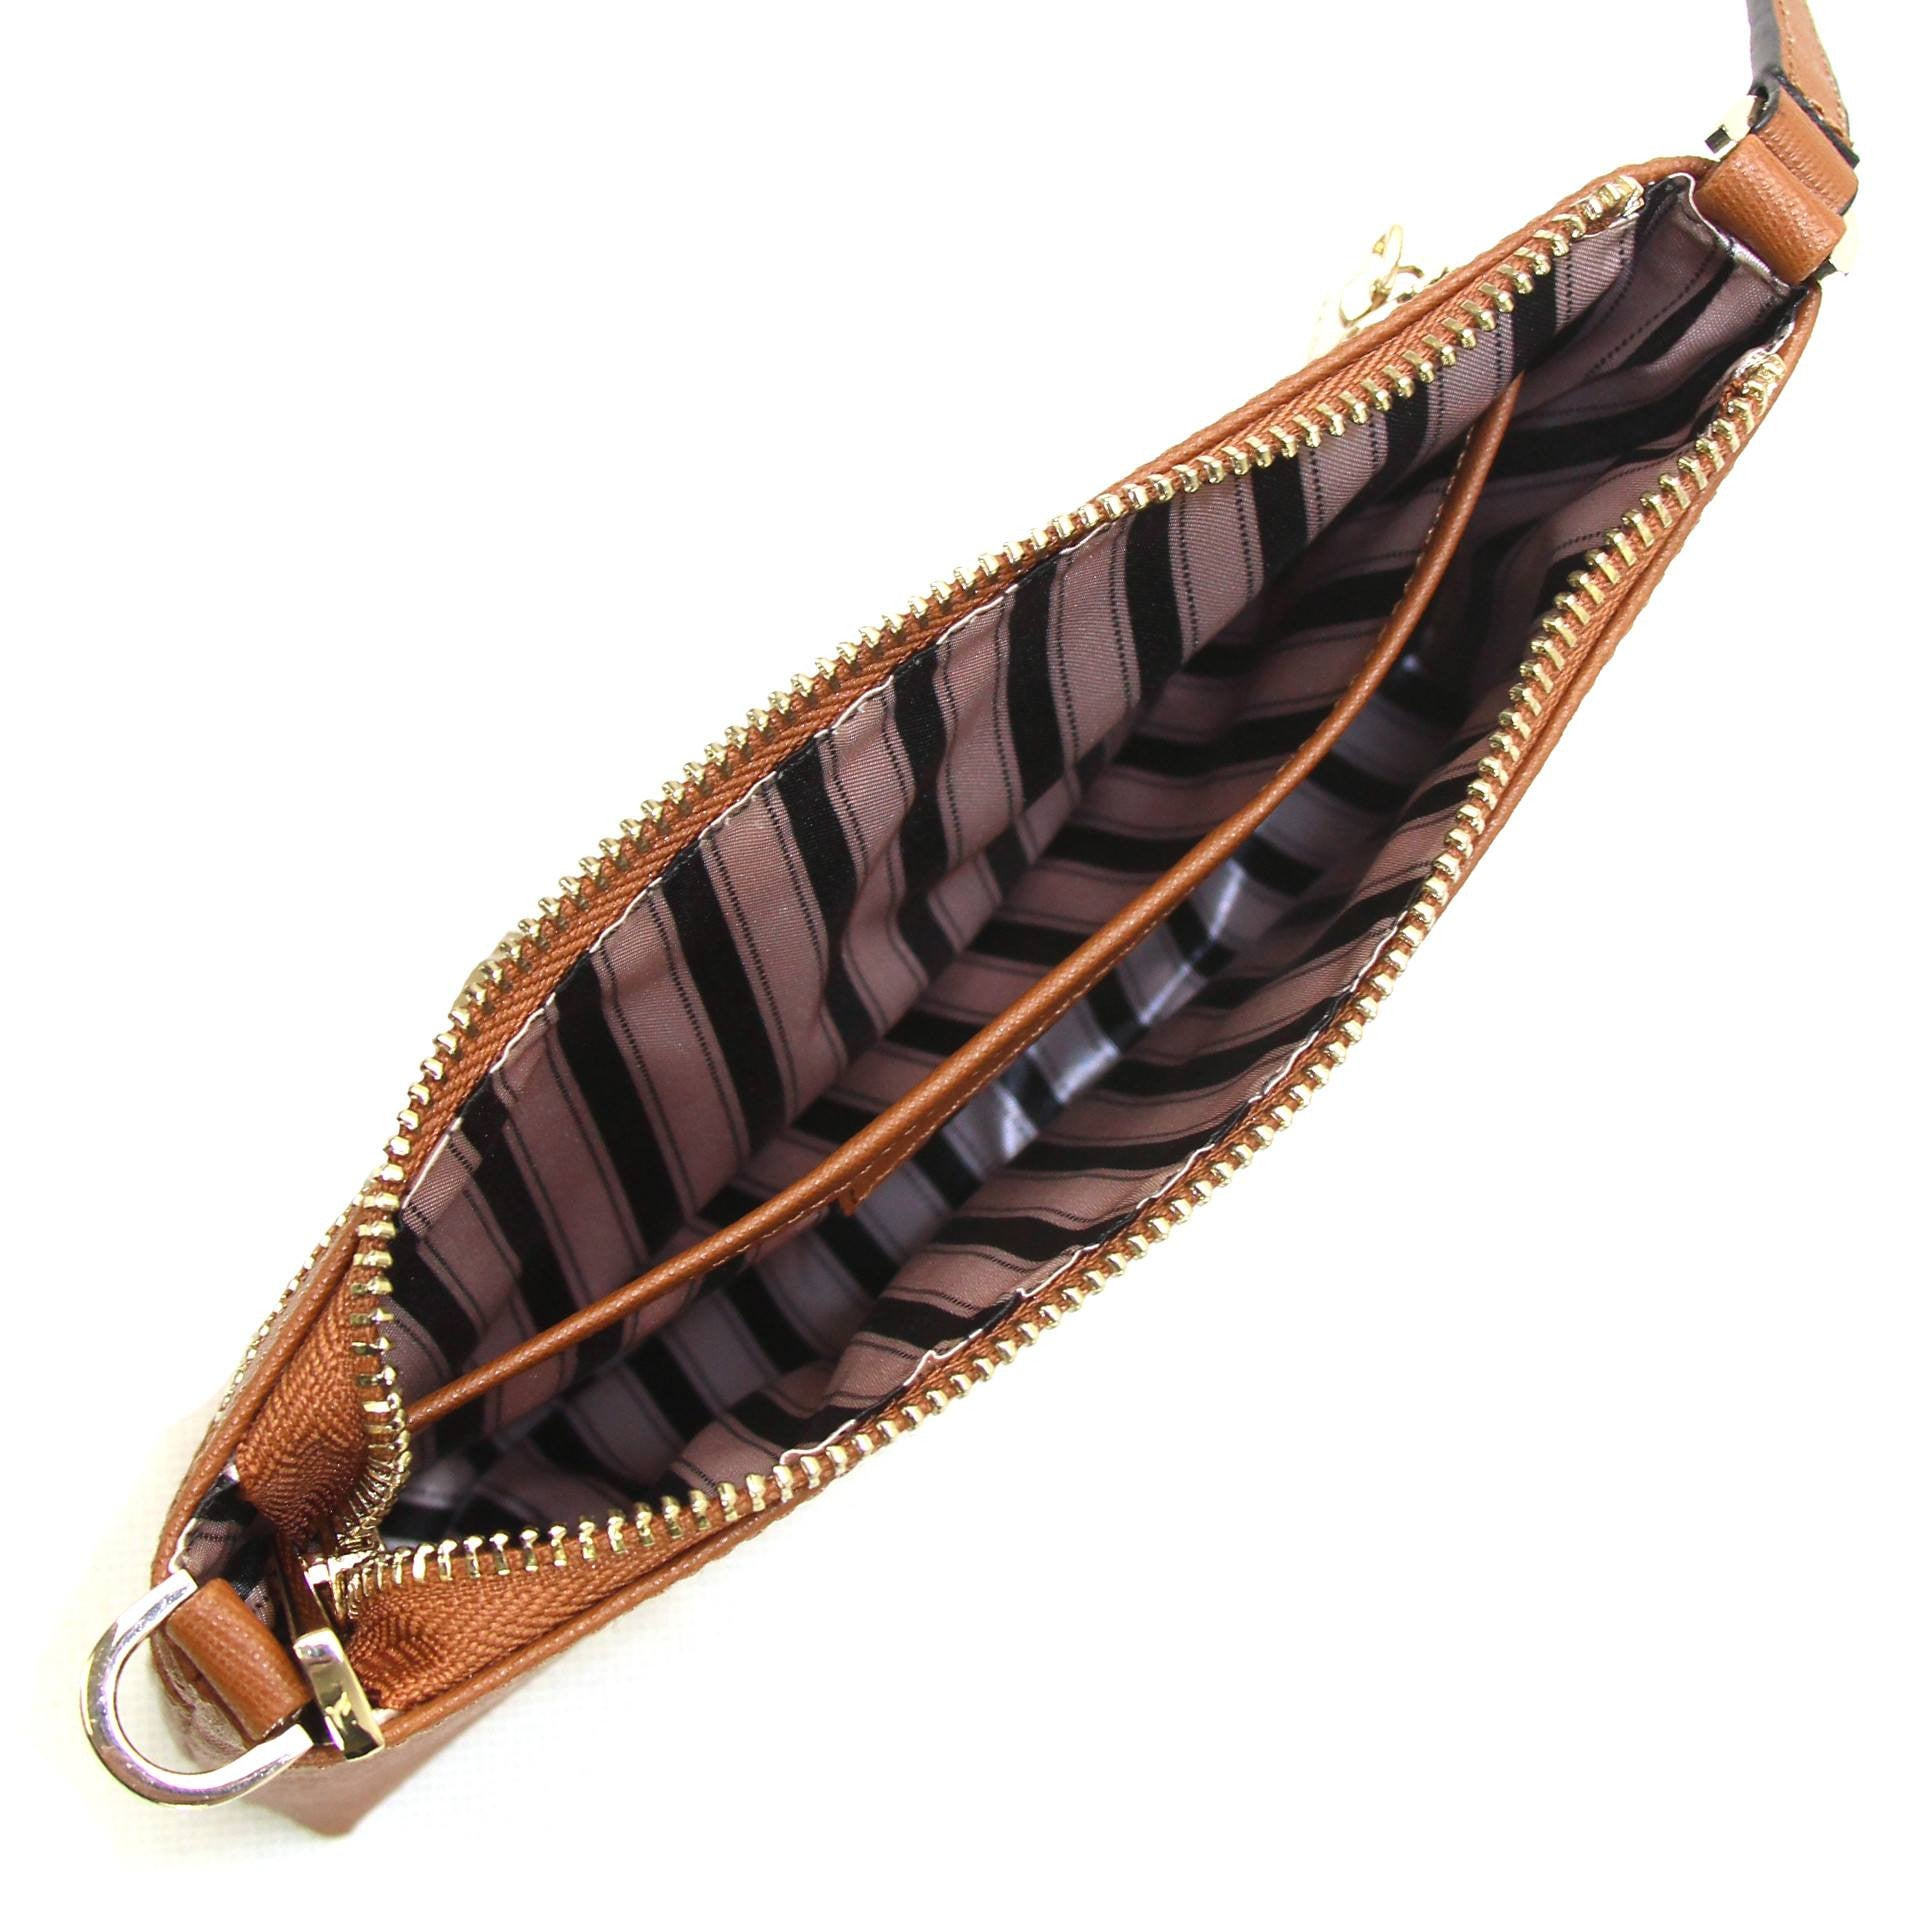 Wallet, Wristlet - Robert Matthew Sofia 24K Gold Leather Shoulder Clutch - Brown Jewel